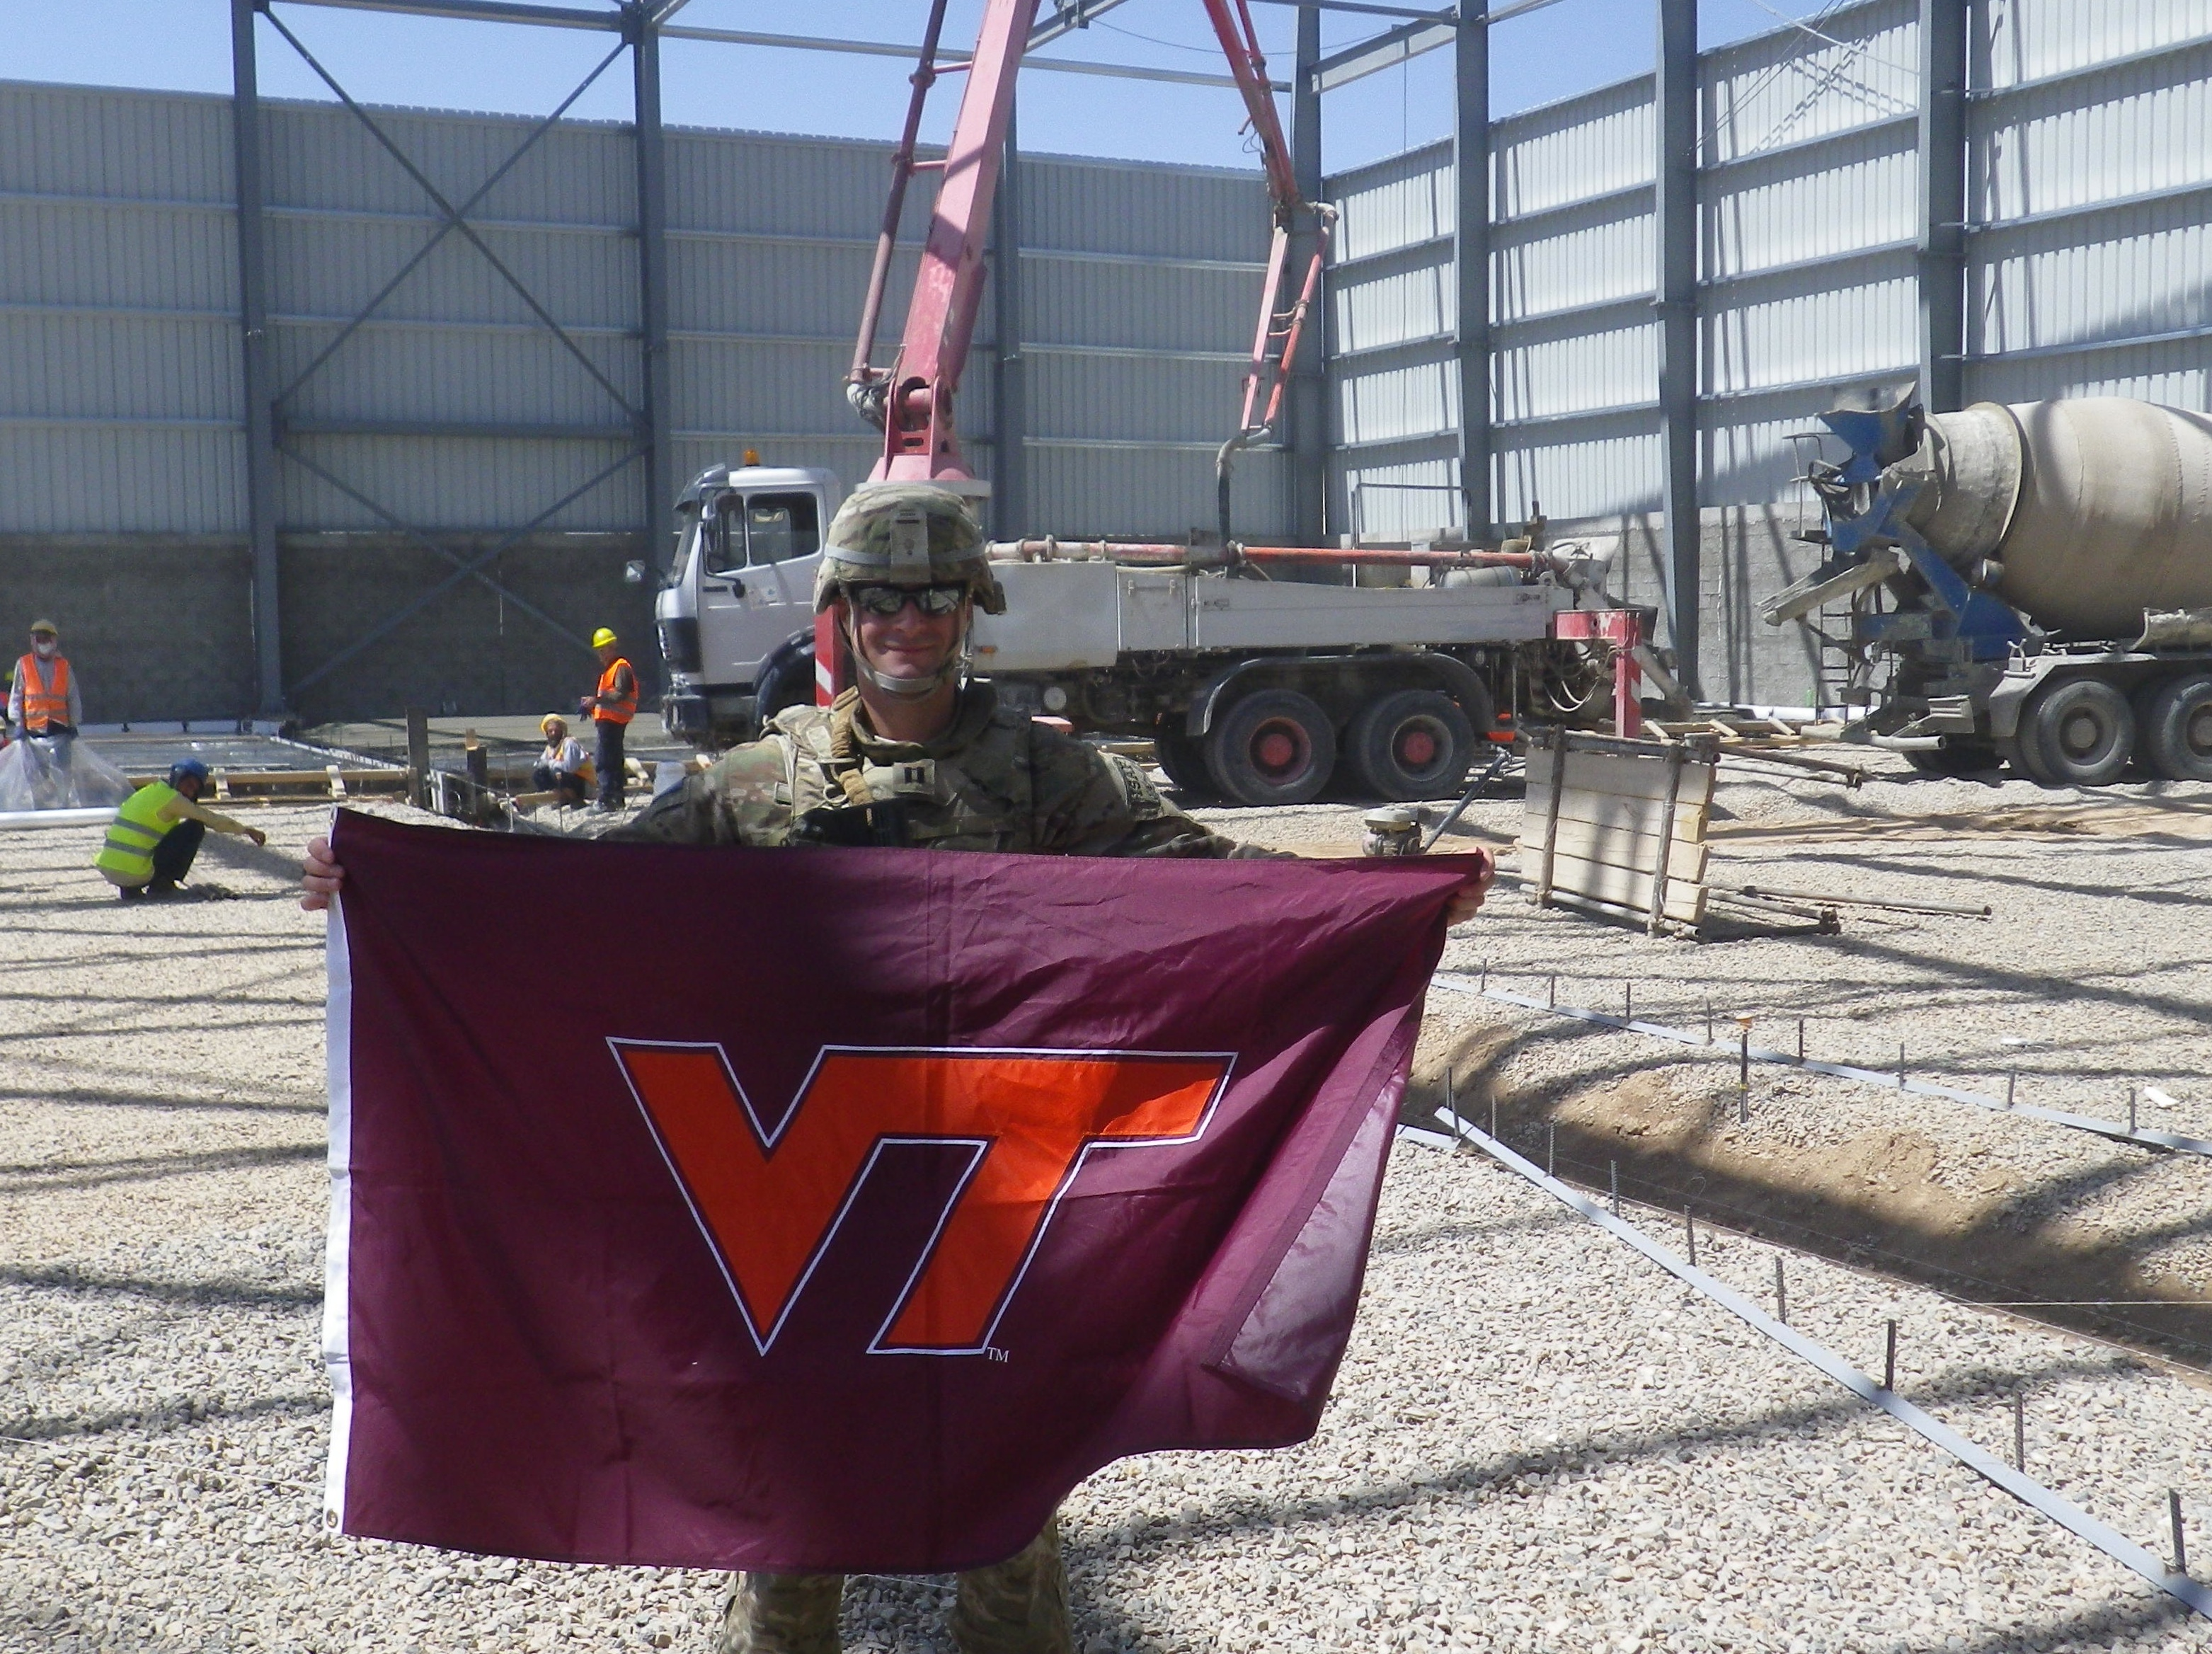 Capt. Darren Zega, U.S. Army, Virginia Tech Corps of Cadets Class of 2007.